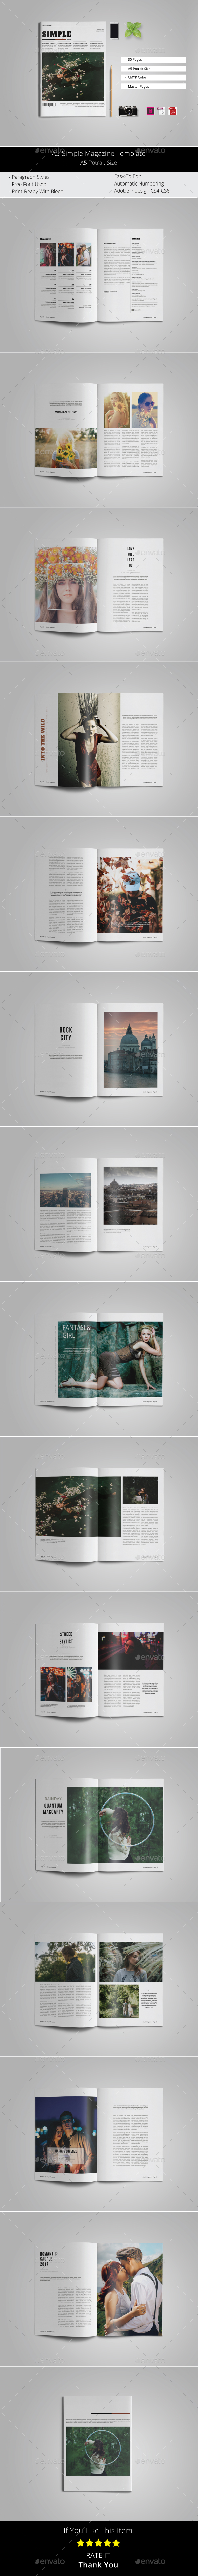 A5 Simple Magazine Template - Magazines Print Templates